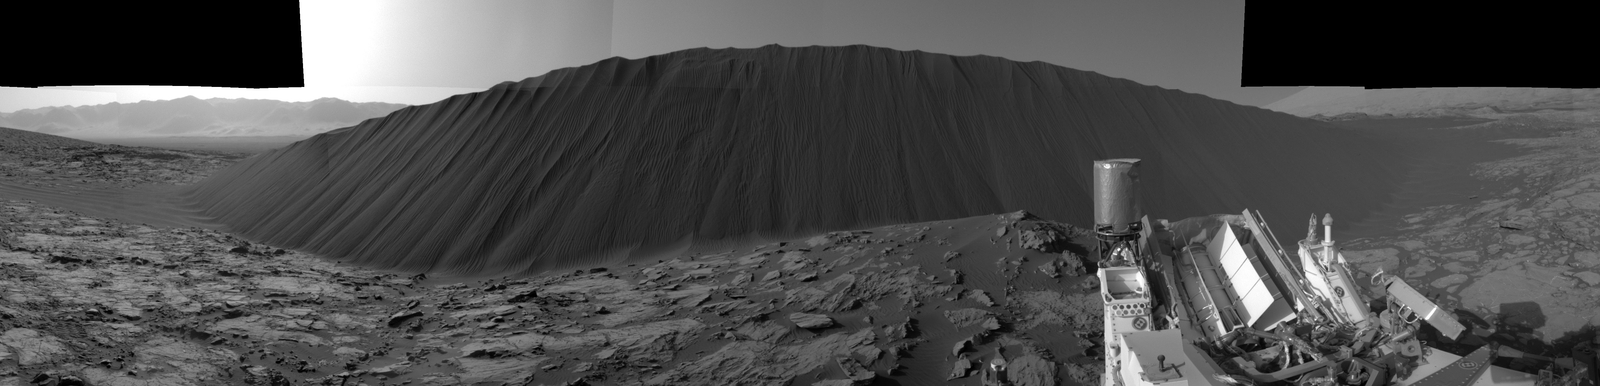 This view from NASA's Curiosity Mars Rover shows the downwind side of a dune about 13 feet high within the Bagnold Dunes field on Mars. The rover's Navigation Camera took the component images on Dec. 17, 2015. As on Earth, the downwind side of an active sand dune has a steep slope called a slip face.